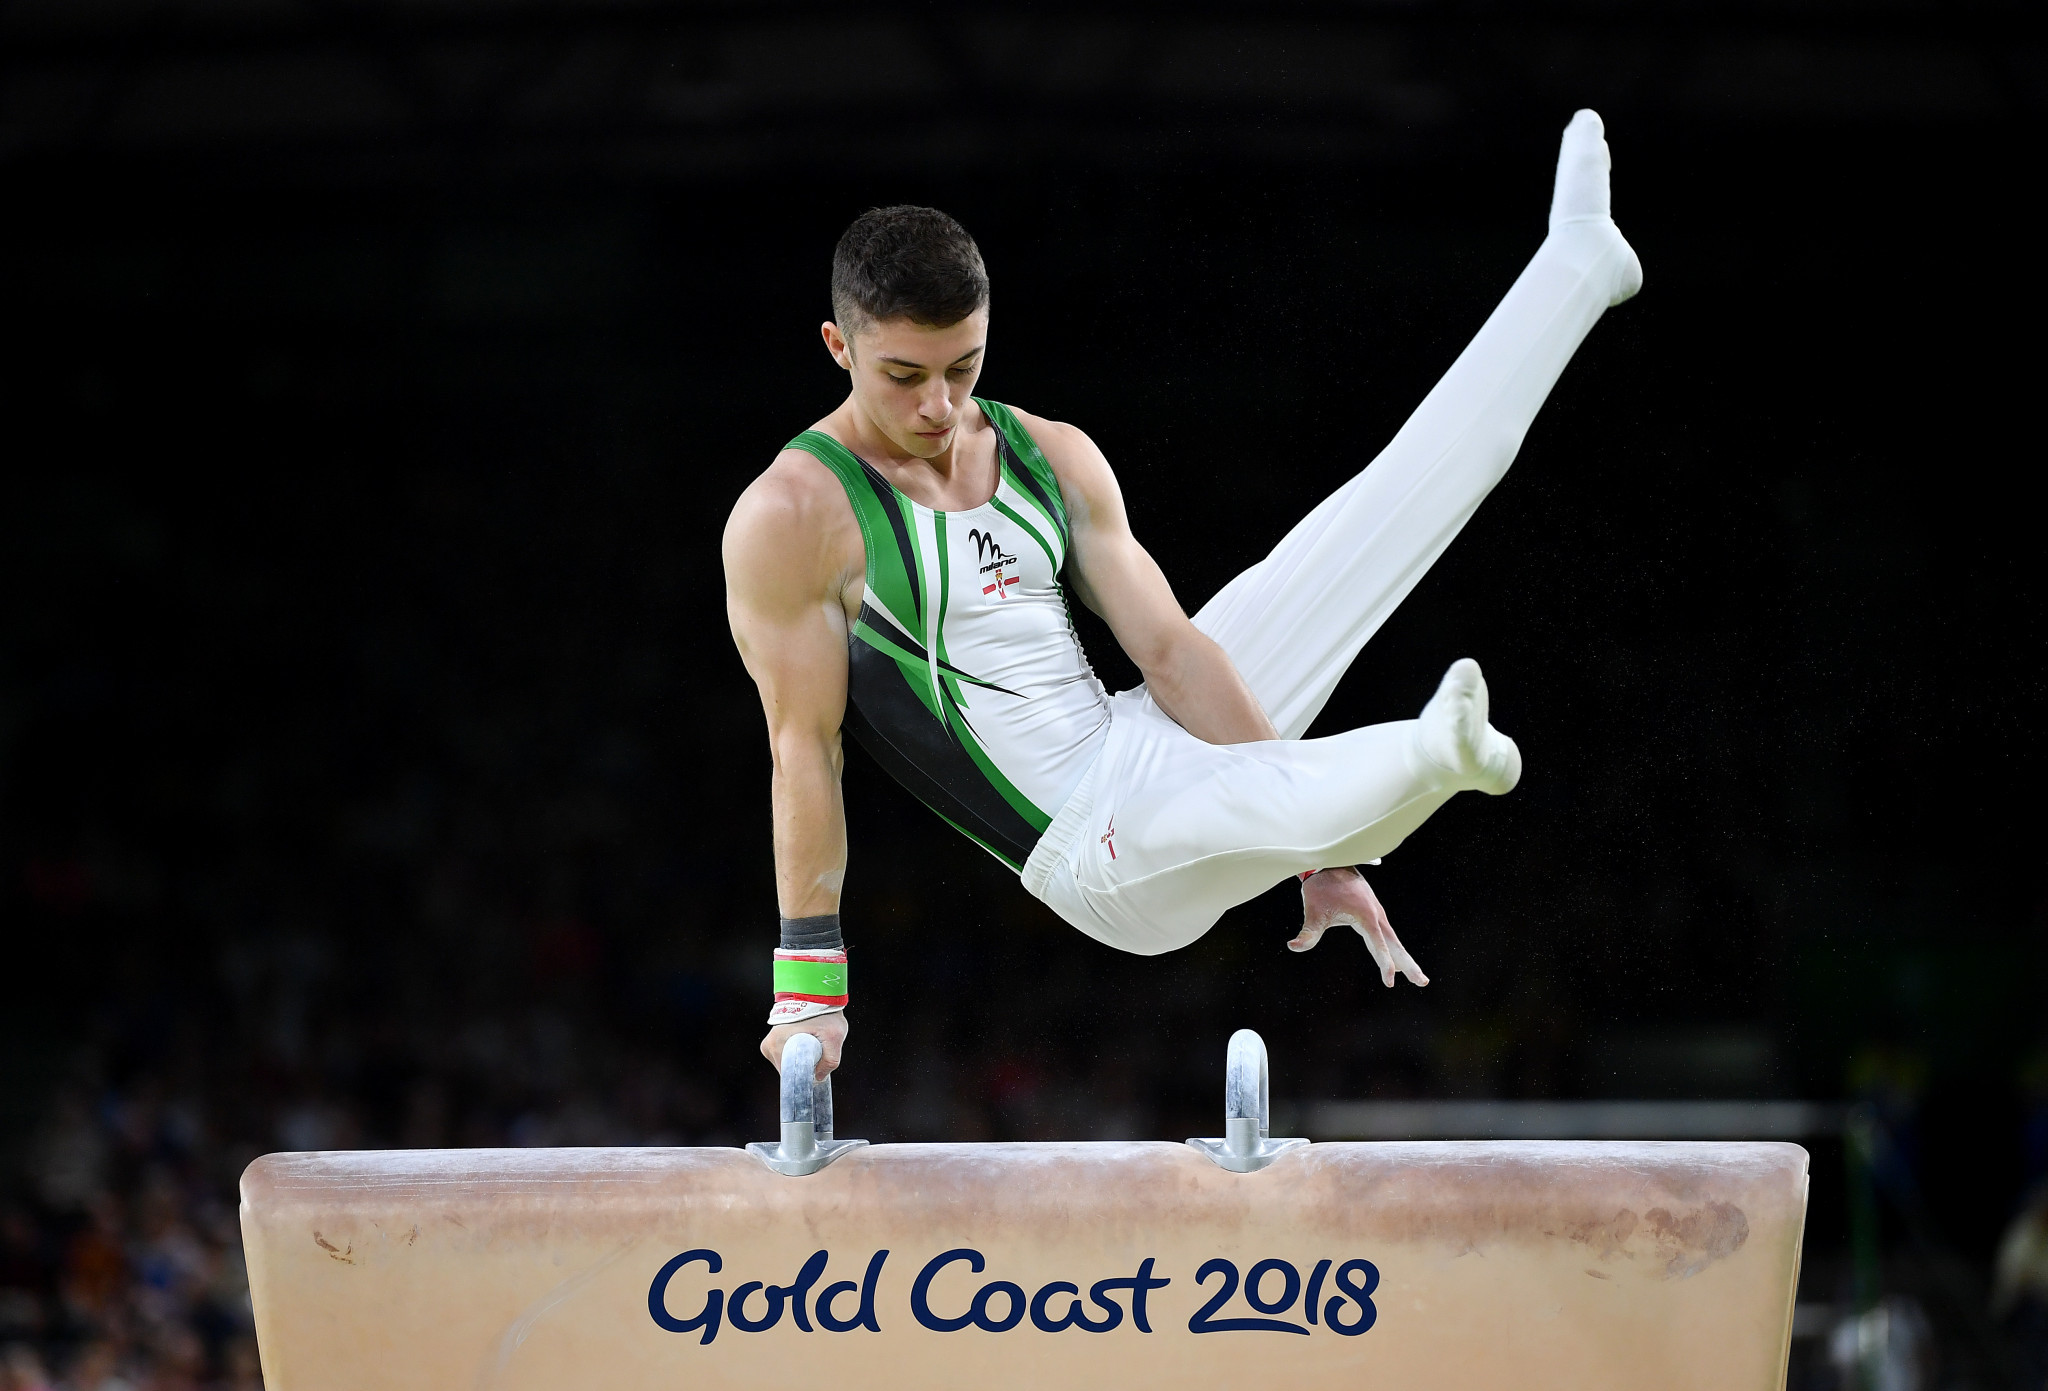 McClenaghan and Georgiou secure surprise gold medals as Olympic champion Whitlock ends without individual title at Gold Coast 2018